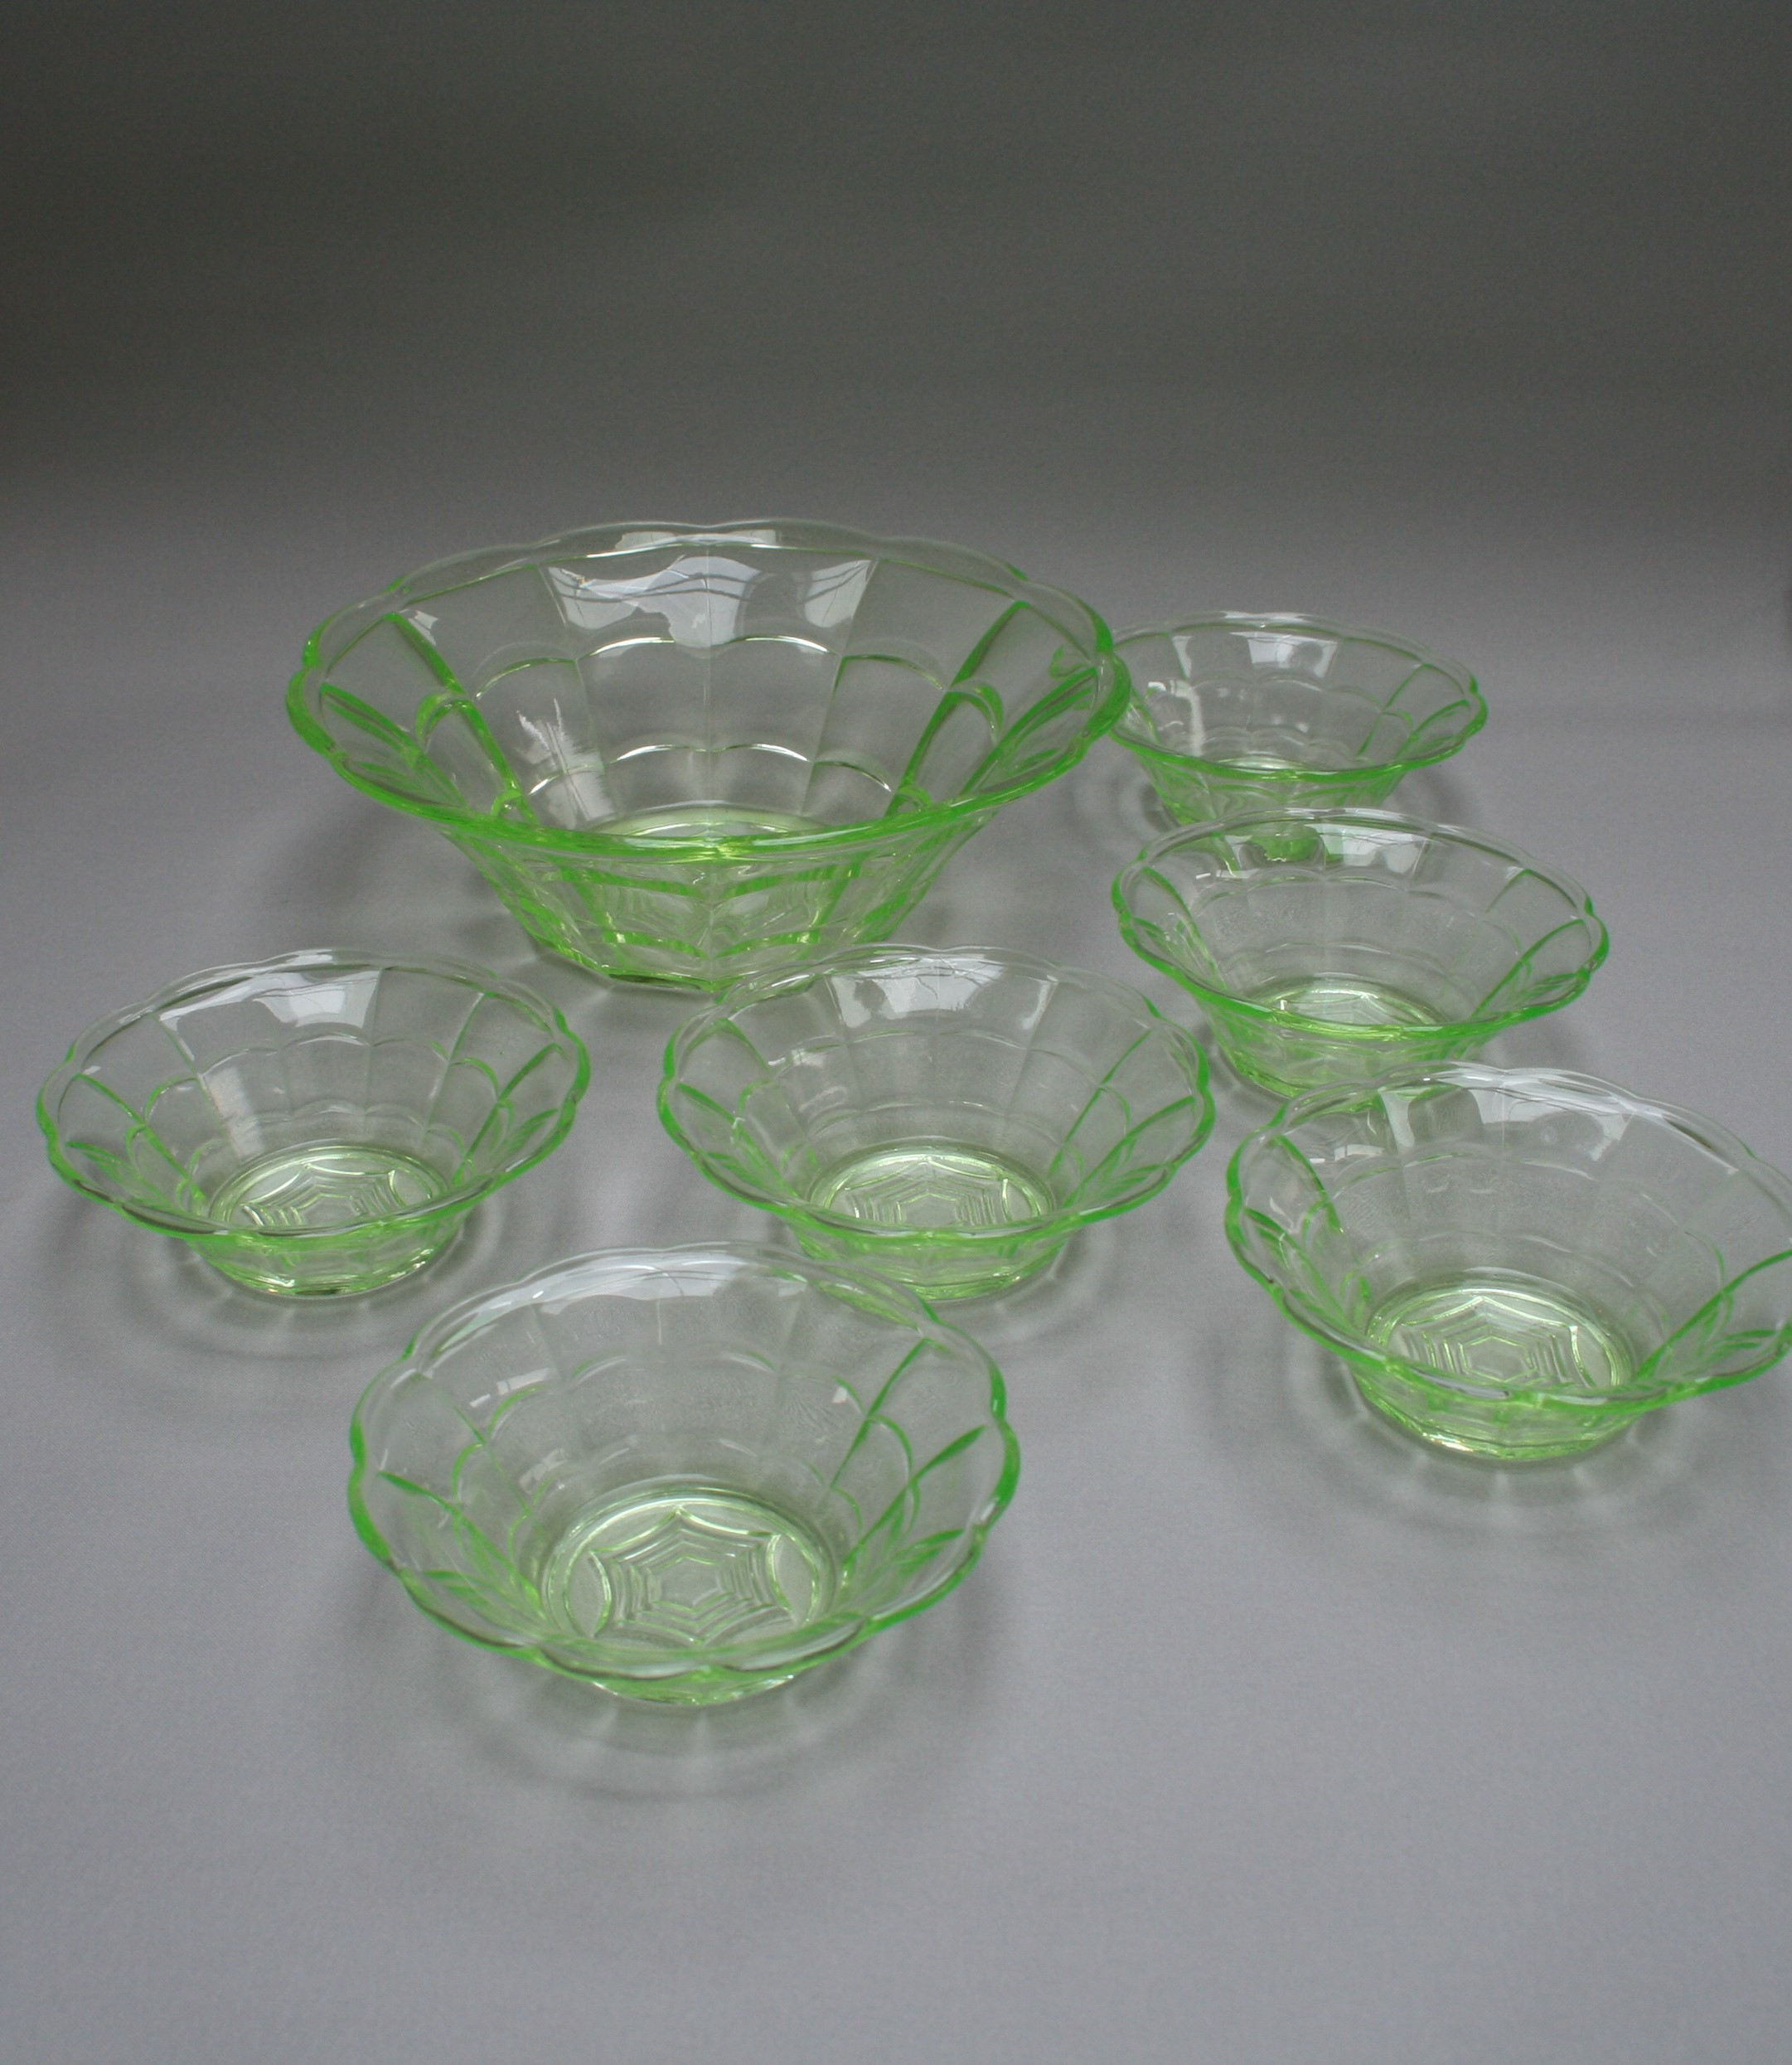 An Antique Serving Bowl And Six Dessert Bowls Made From